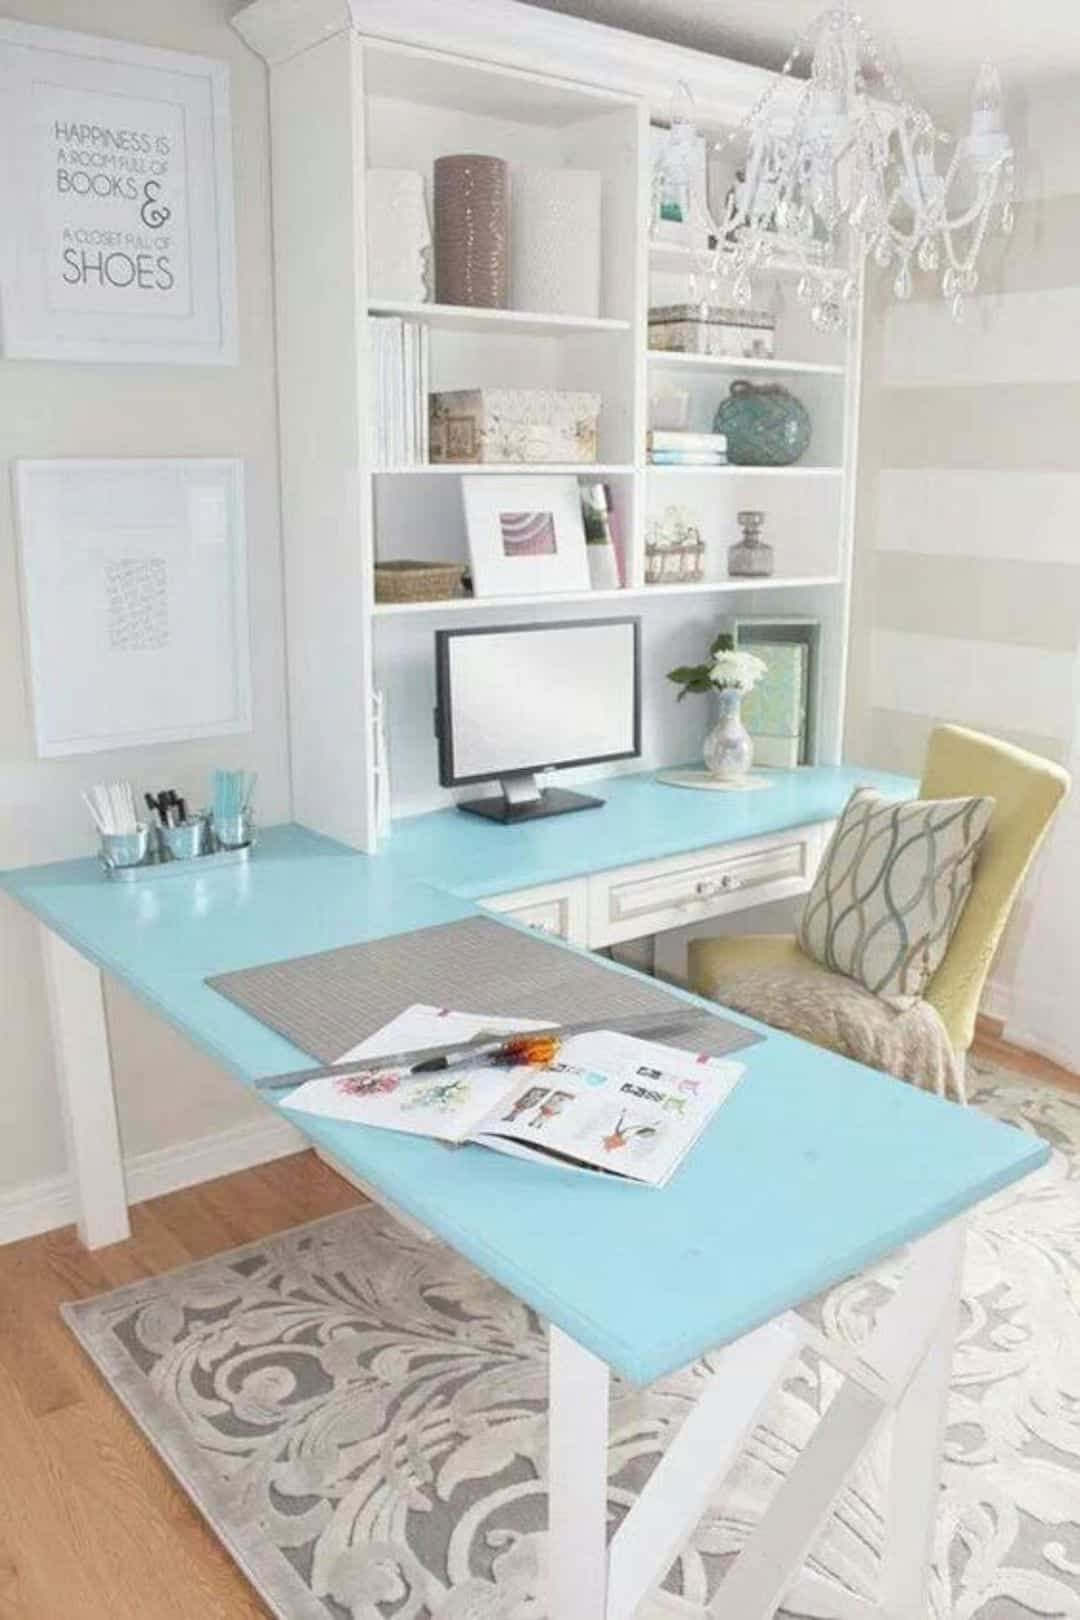 Ammonhof An Office Building With Clear And Simple Exterior And Interior Facades Home Office Decor Feminine Home Offices Craft Room Office